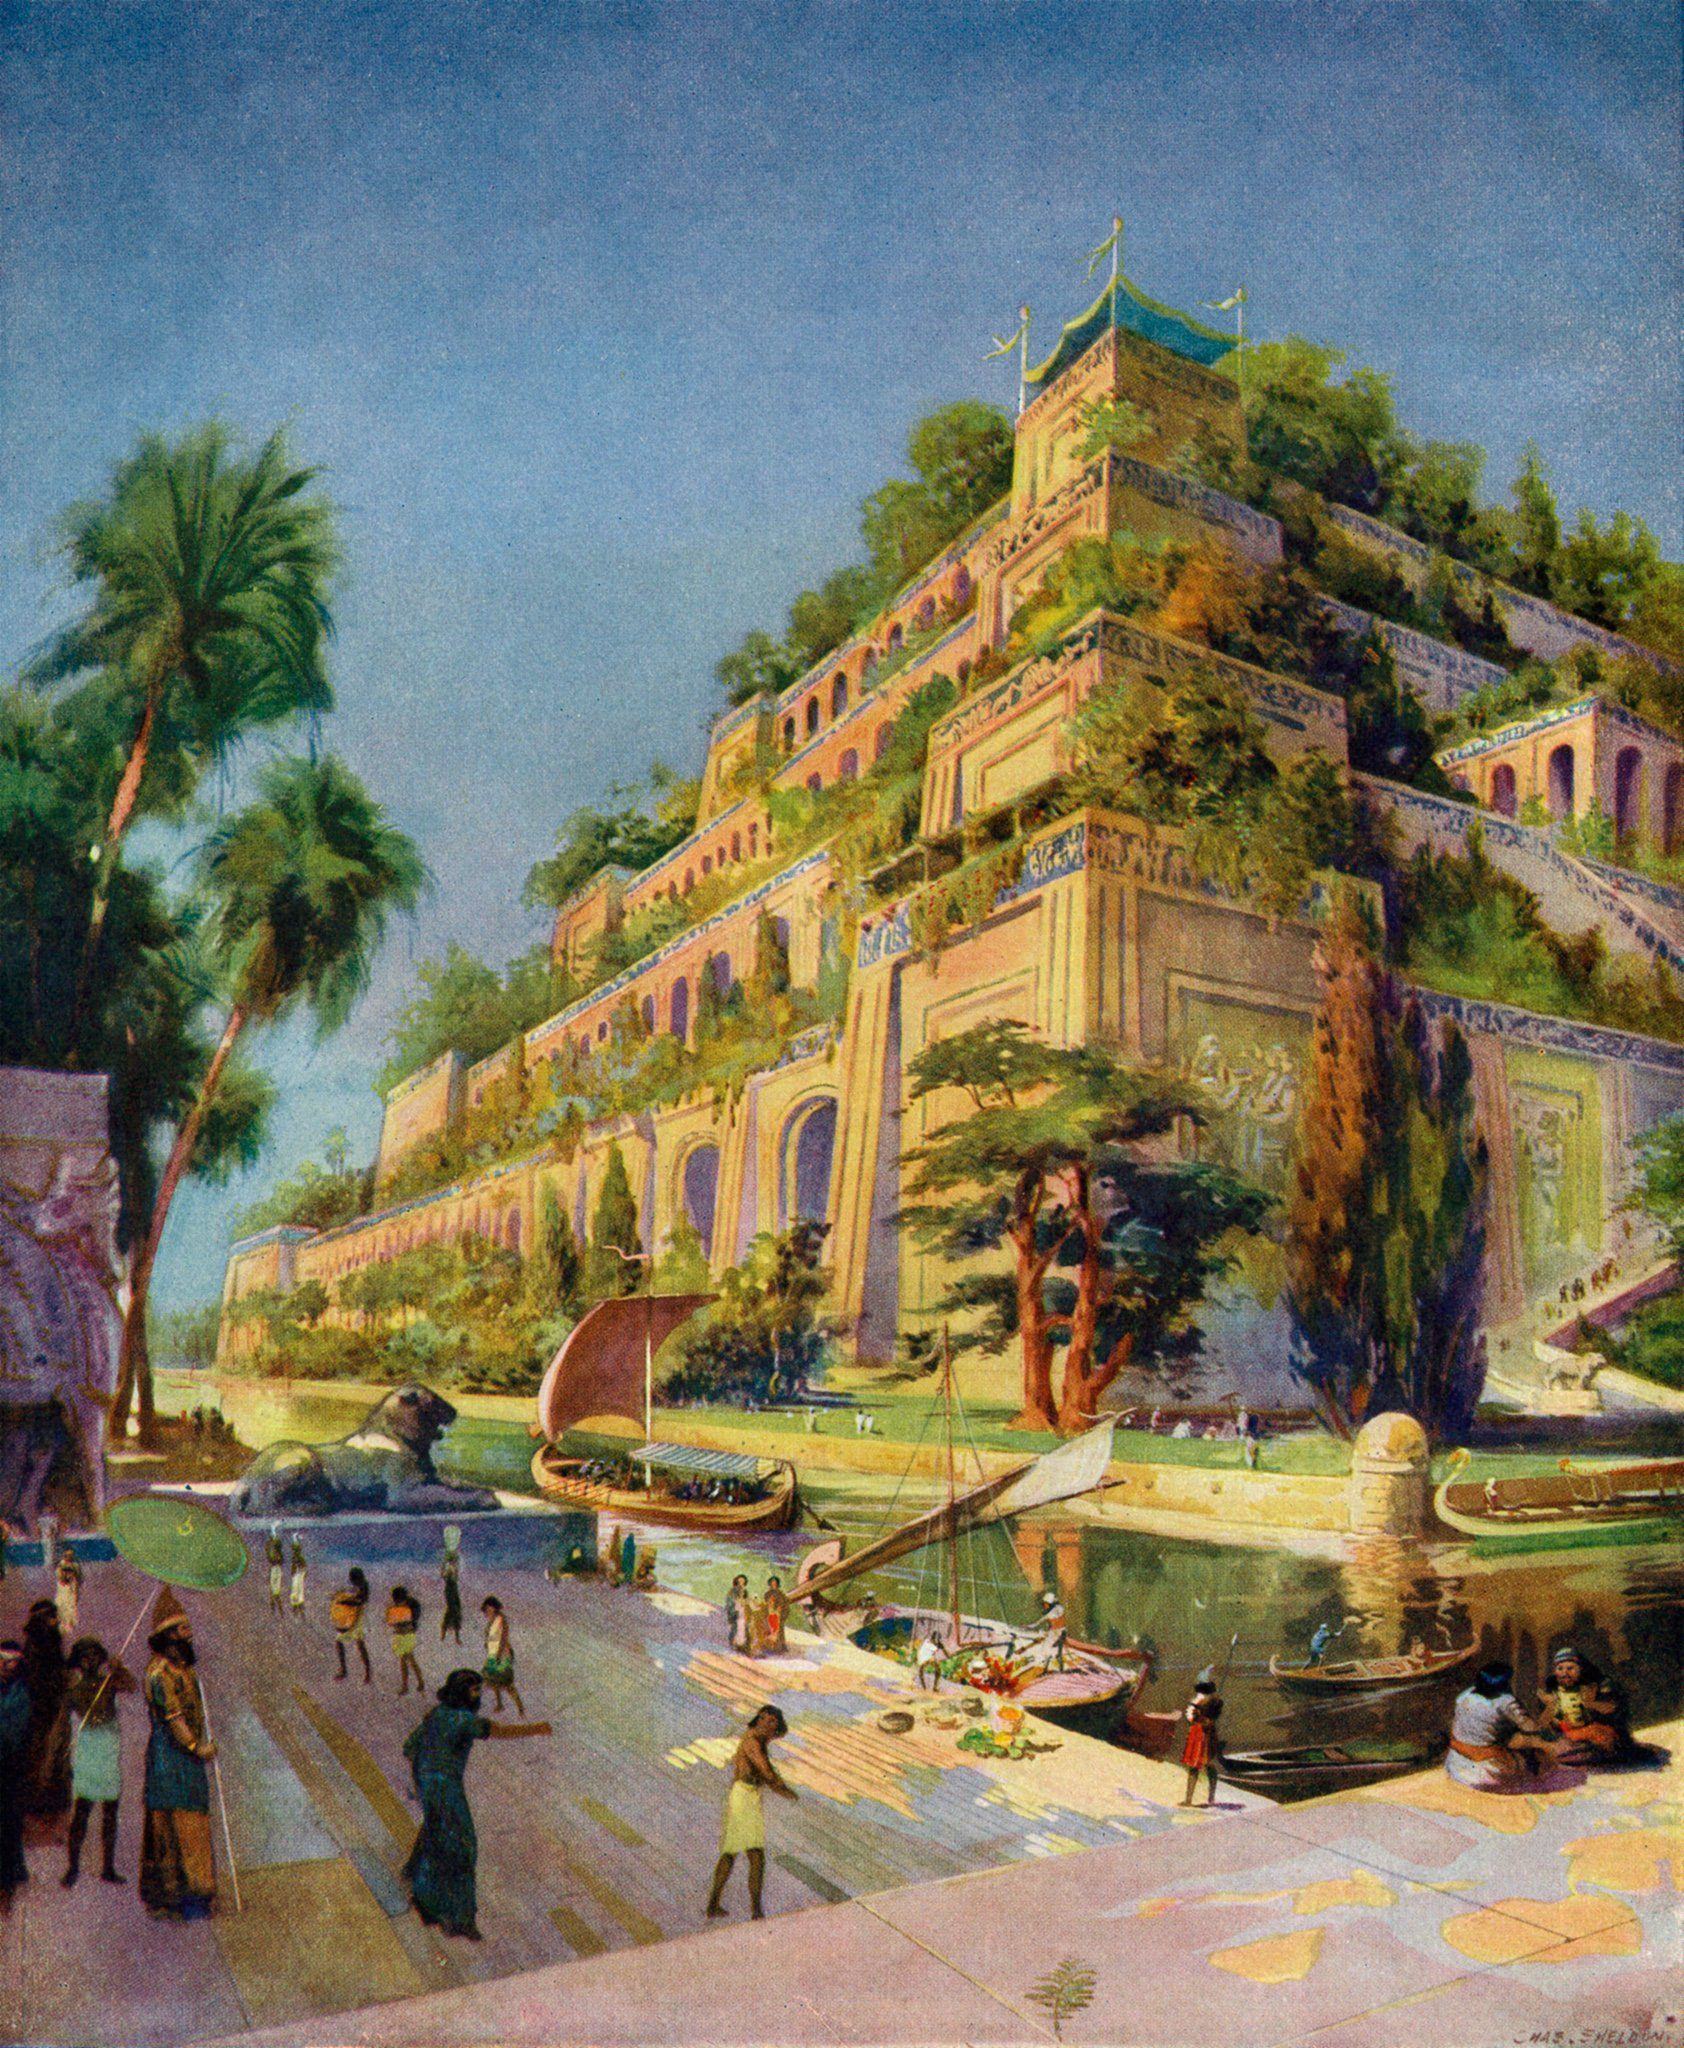 d855fbdc82c7b0e0e12ad0ee3d32c669 - Seven Wonders Of The Ancient World Hanging Gardens